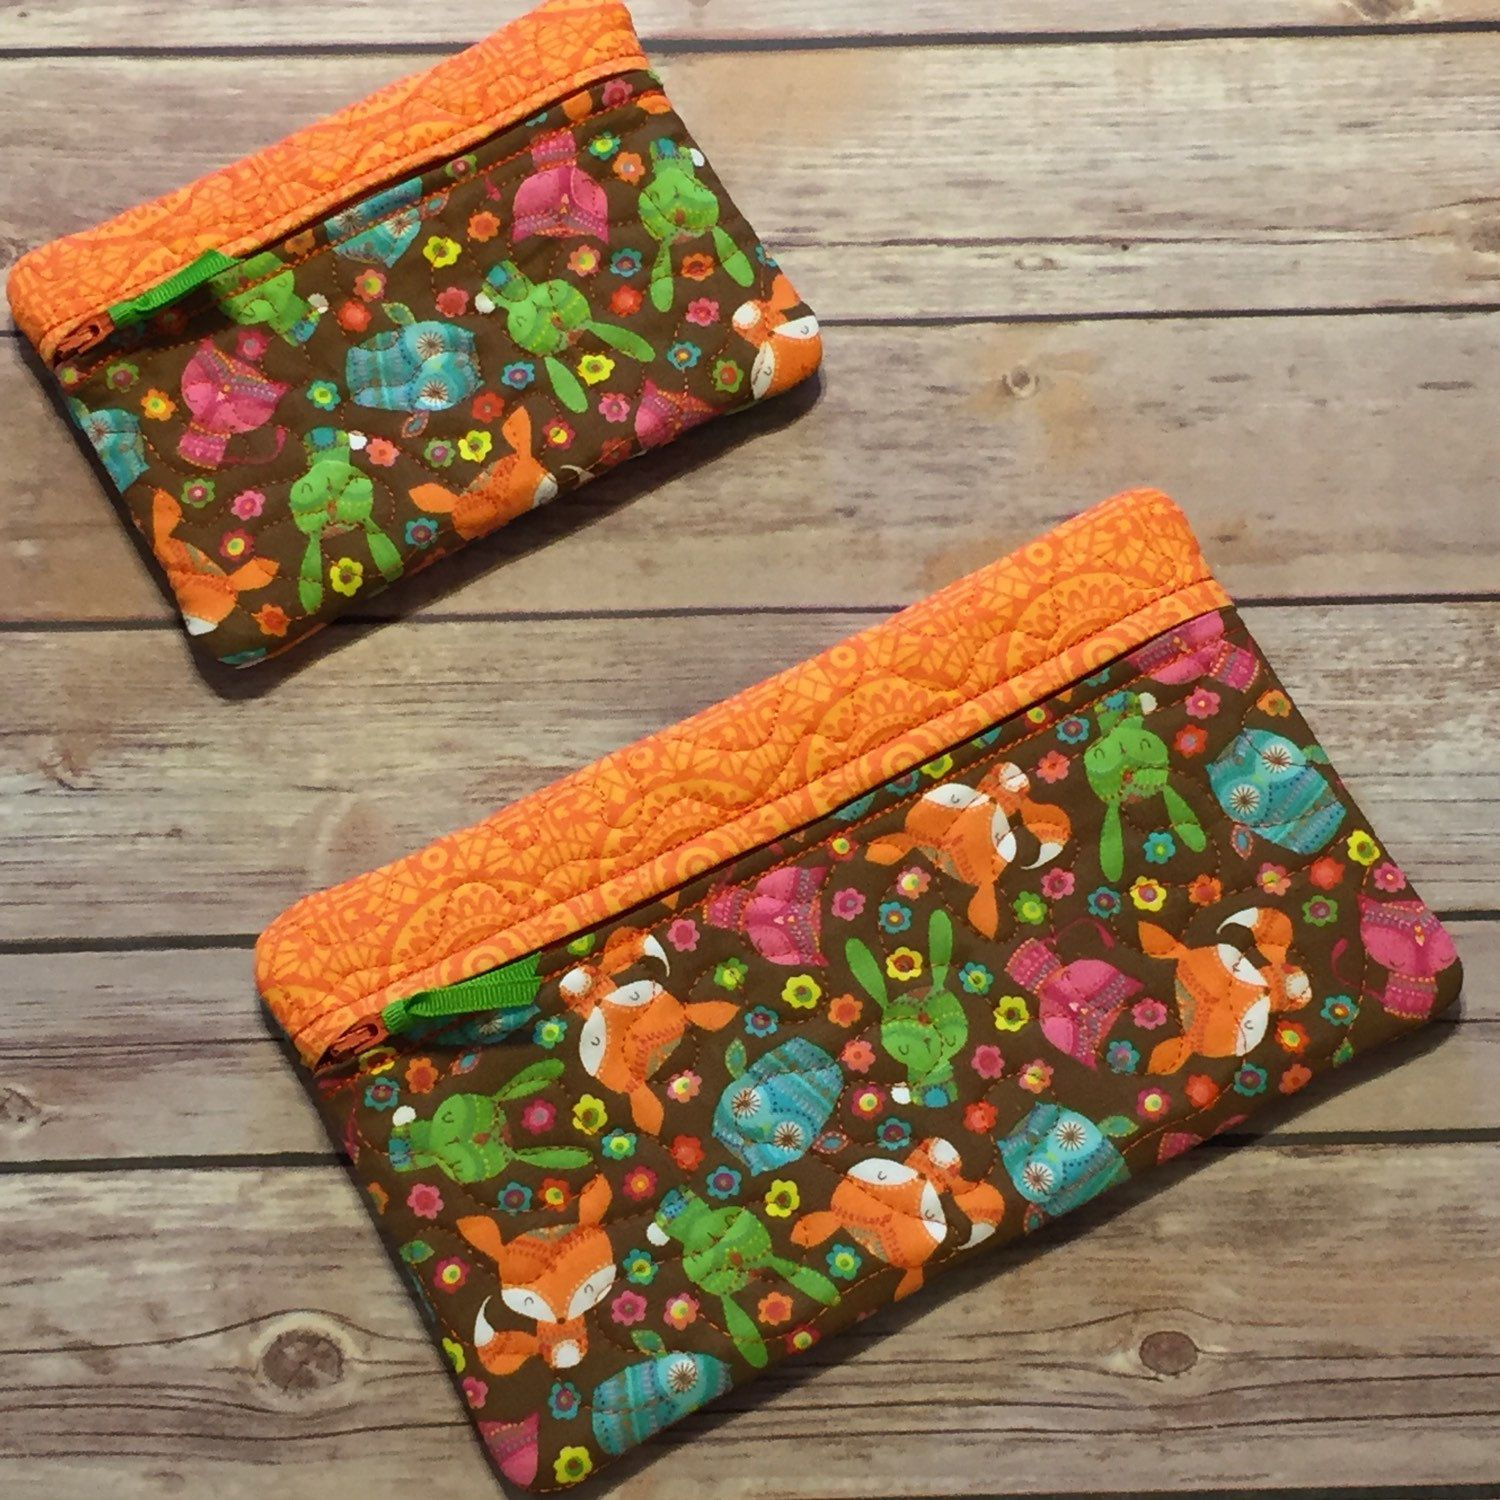 woodland animal print cute bags for kids cosmetic bags make up